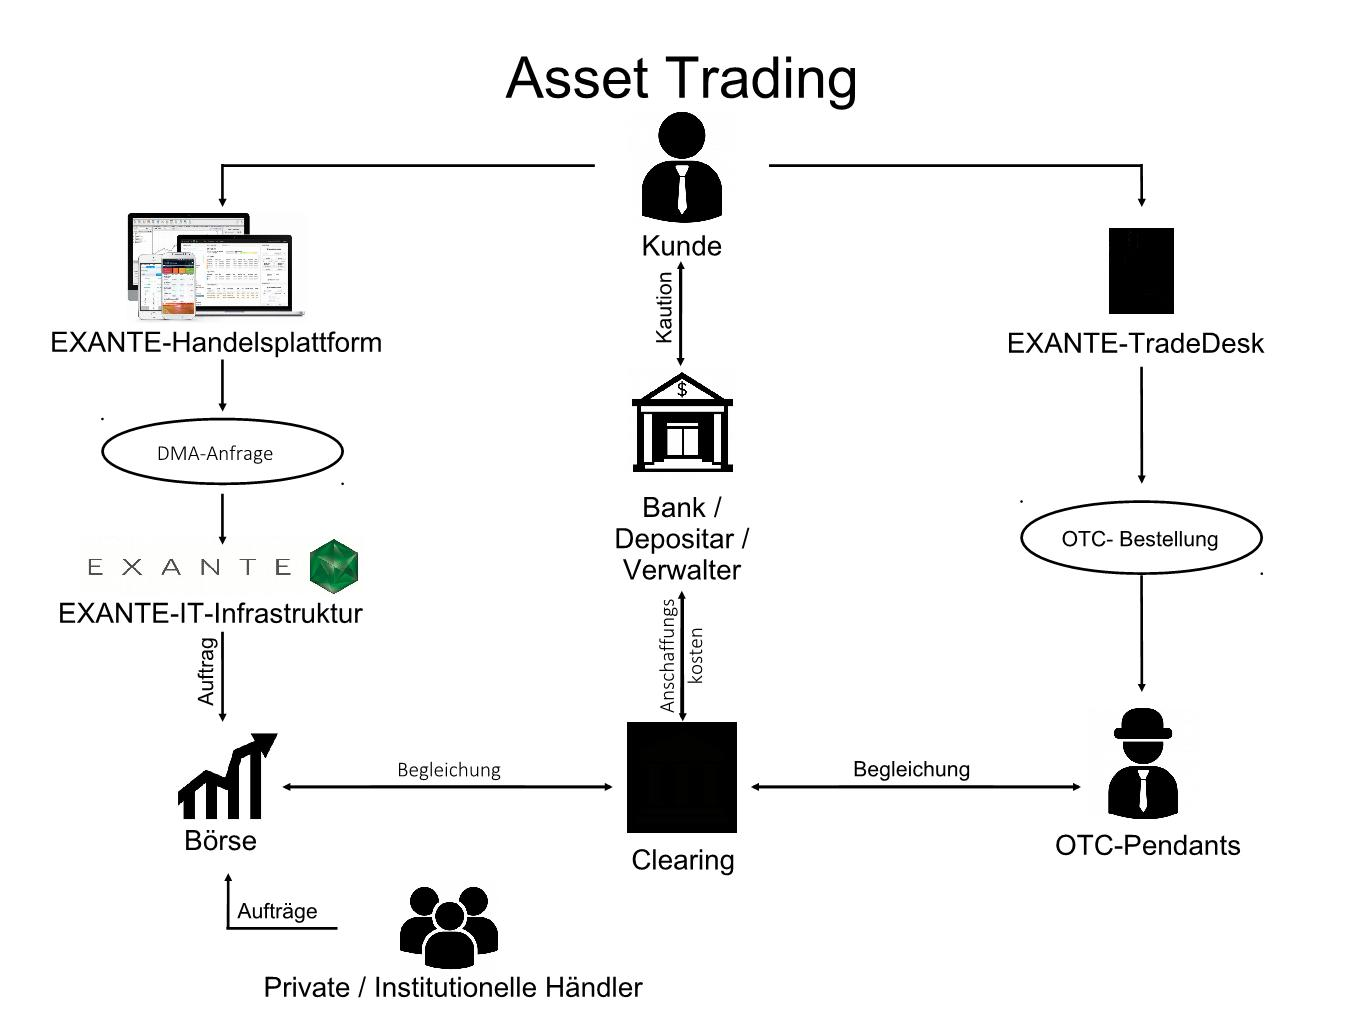 How brokerage works